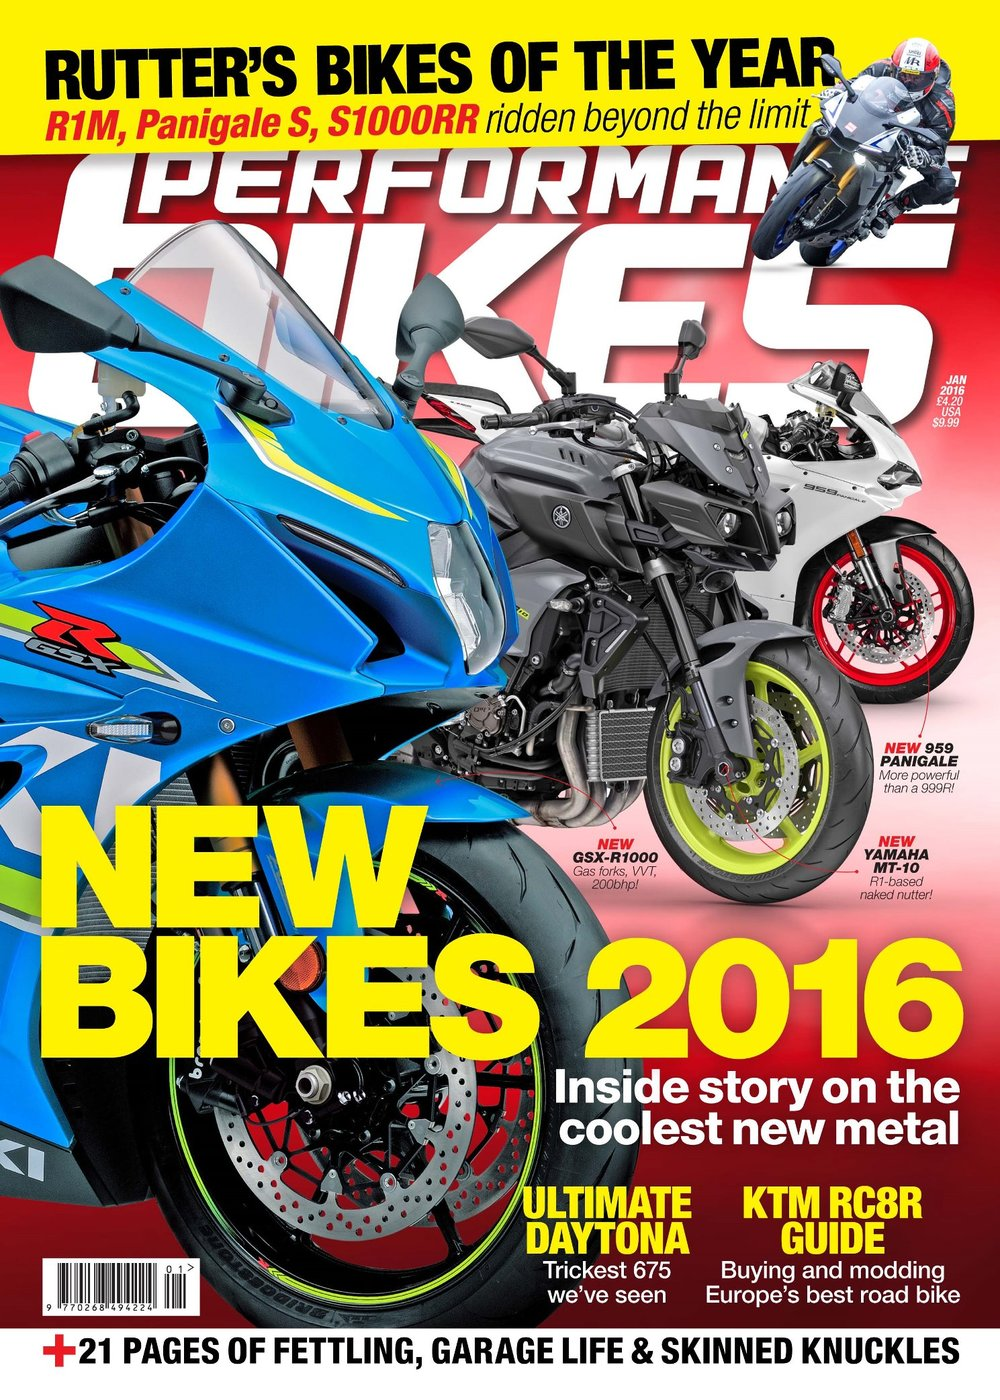 Performance Bikes Januray 2016 issue